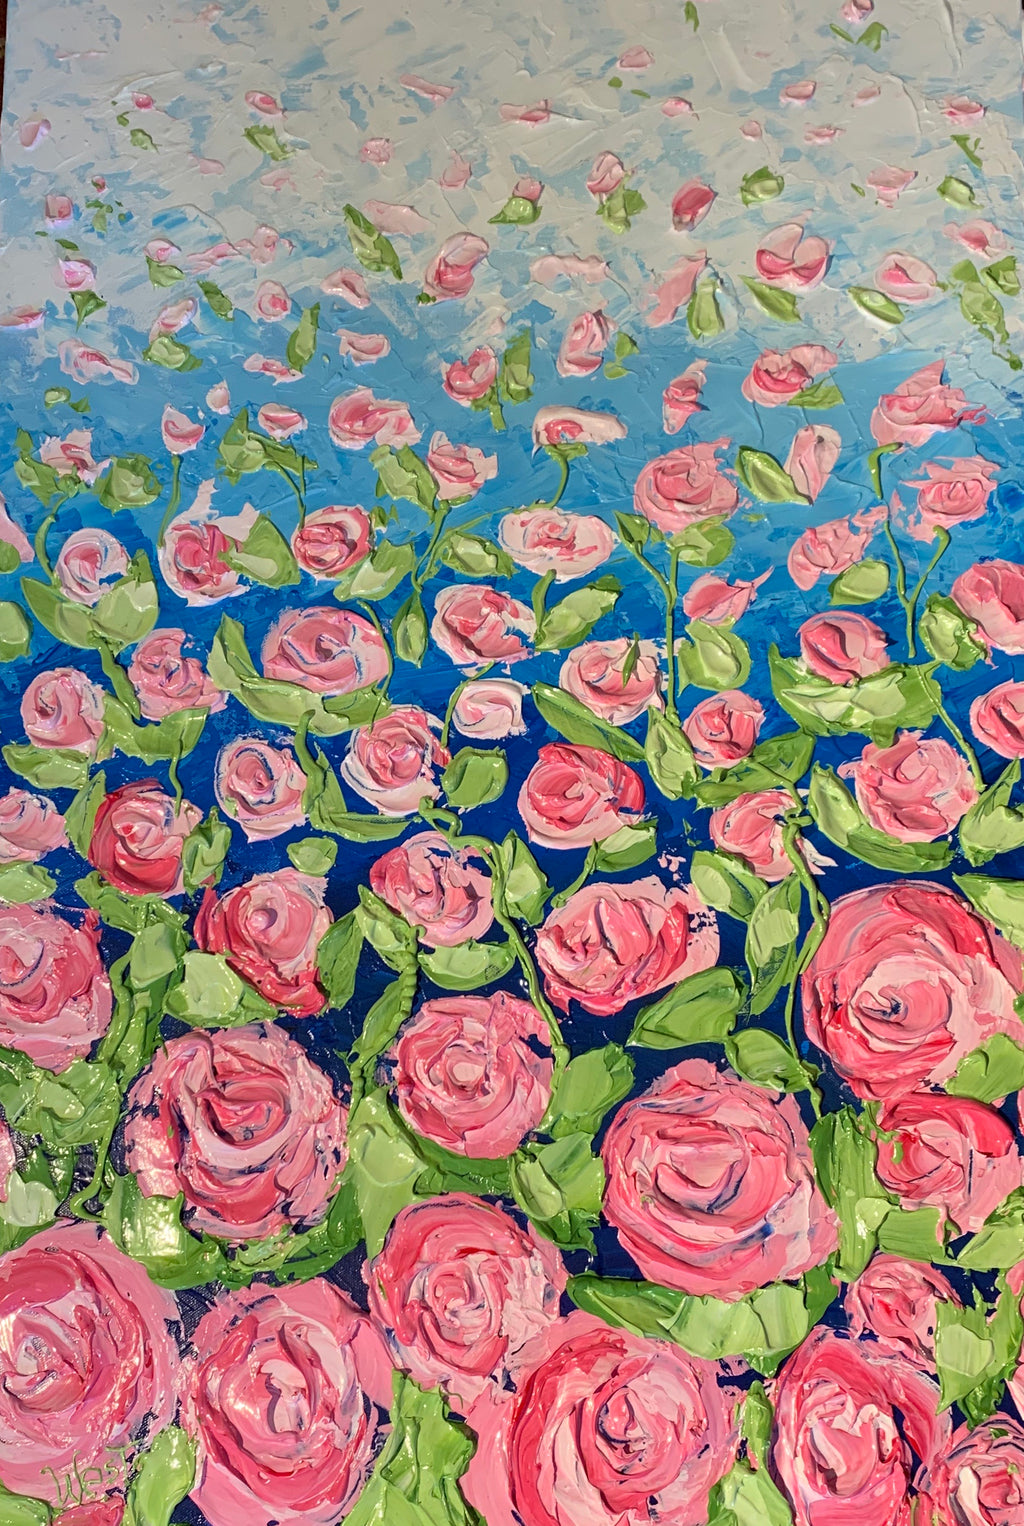 "New! It's Raining Roses"" 24"" x 36"" x 1.5"" - Artwork"